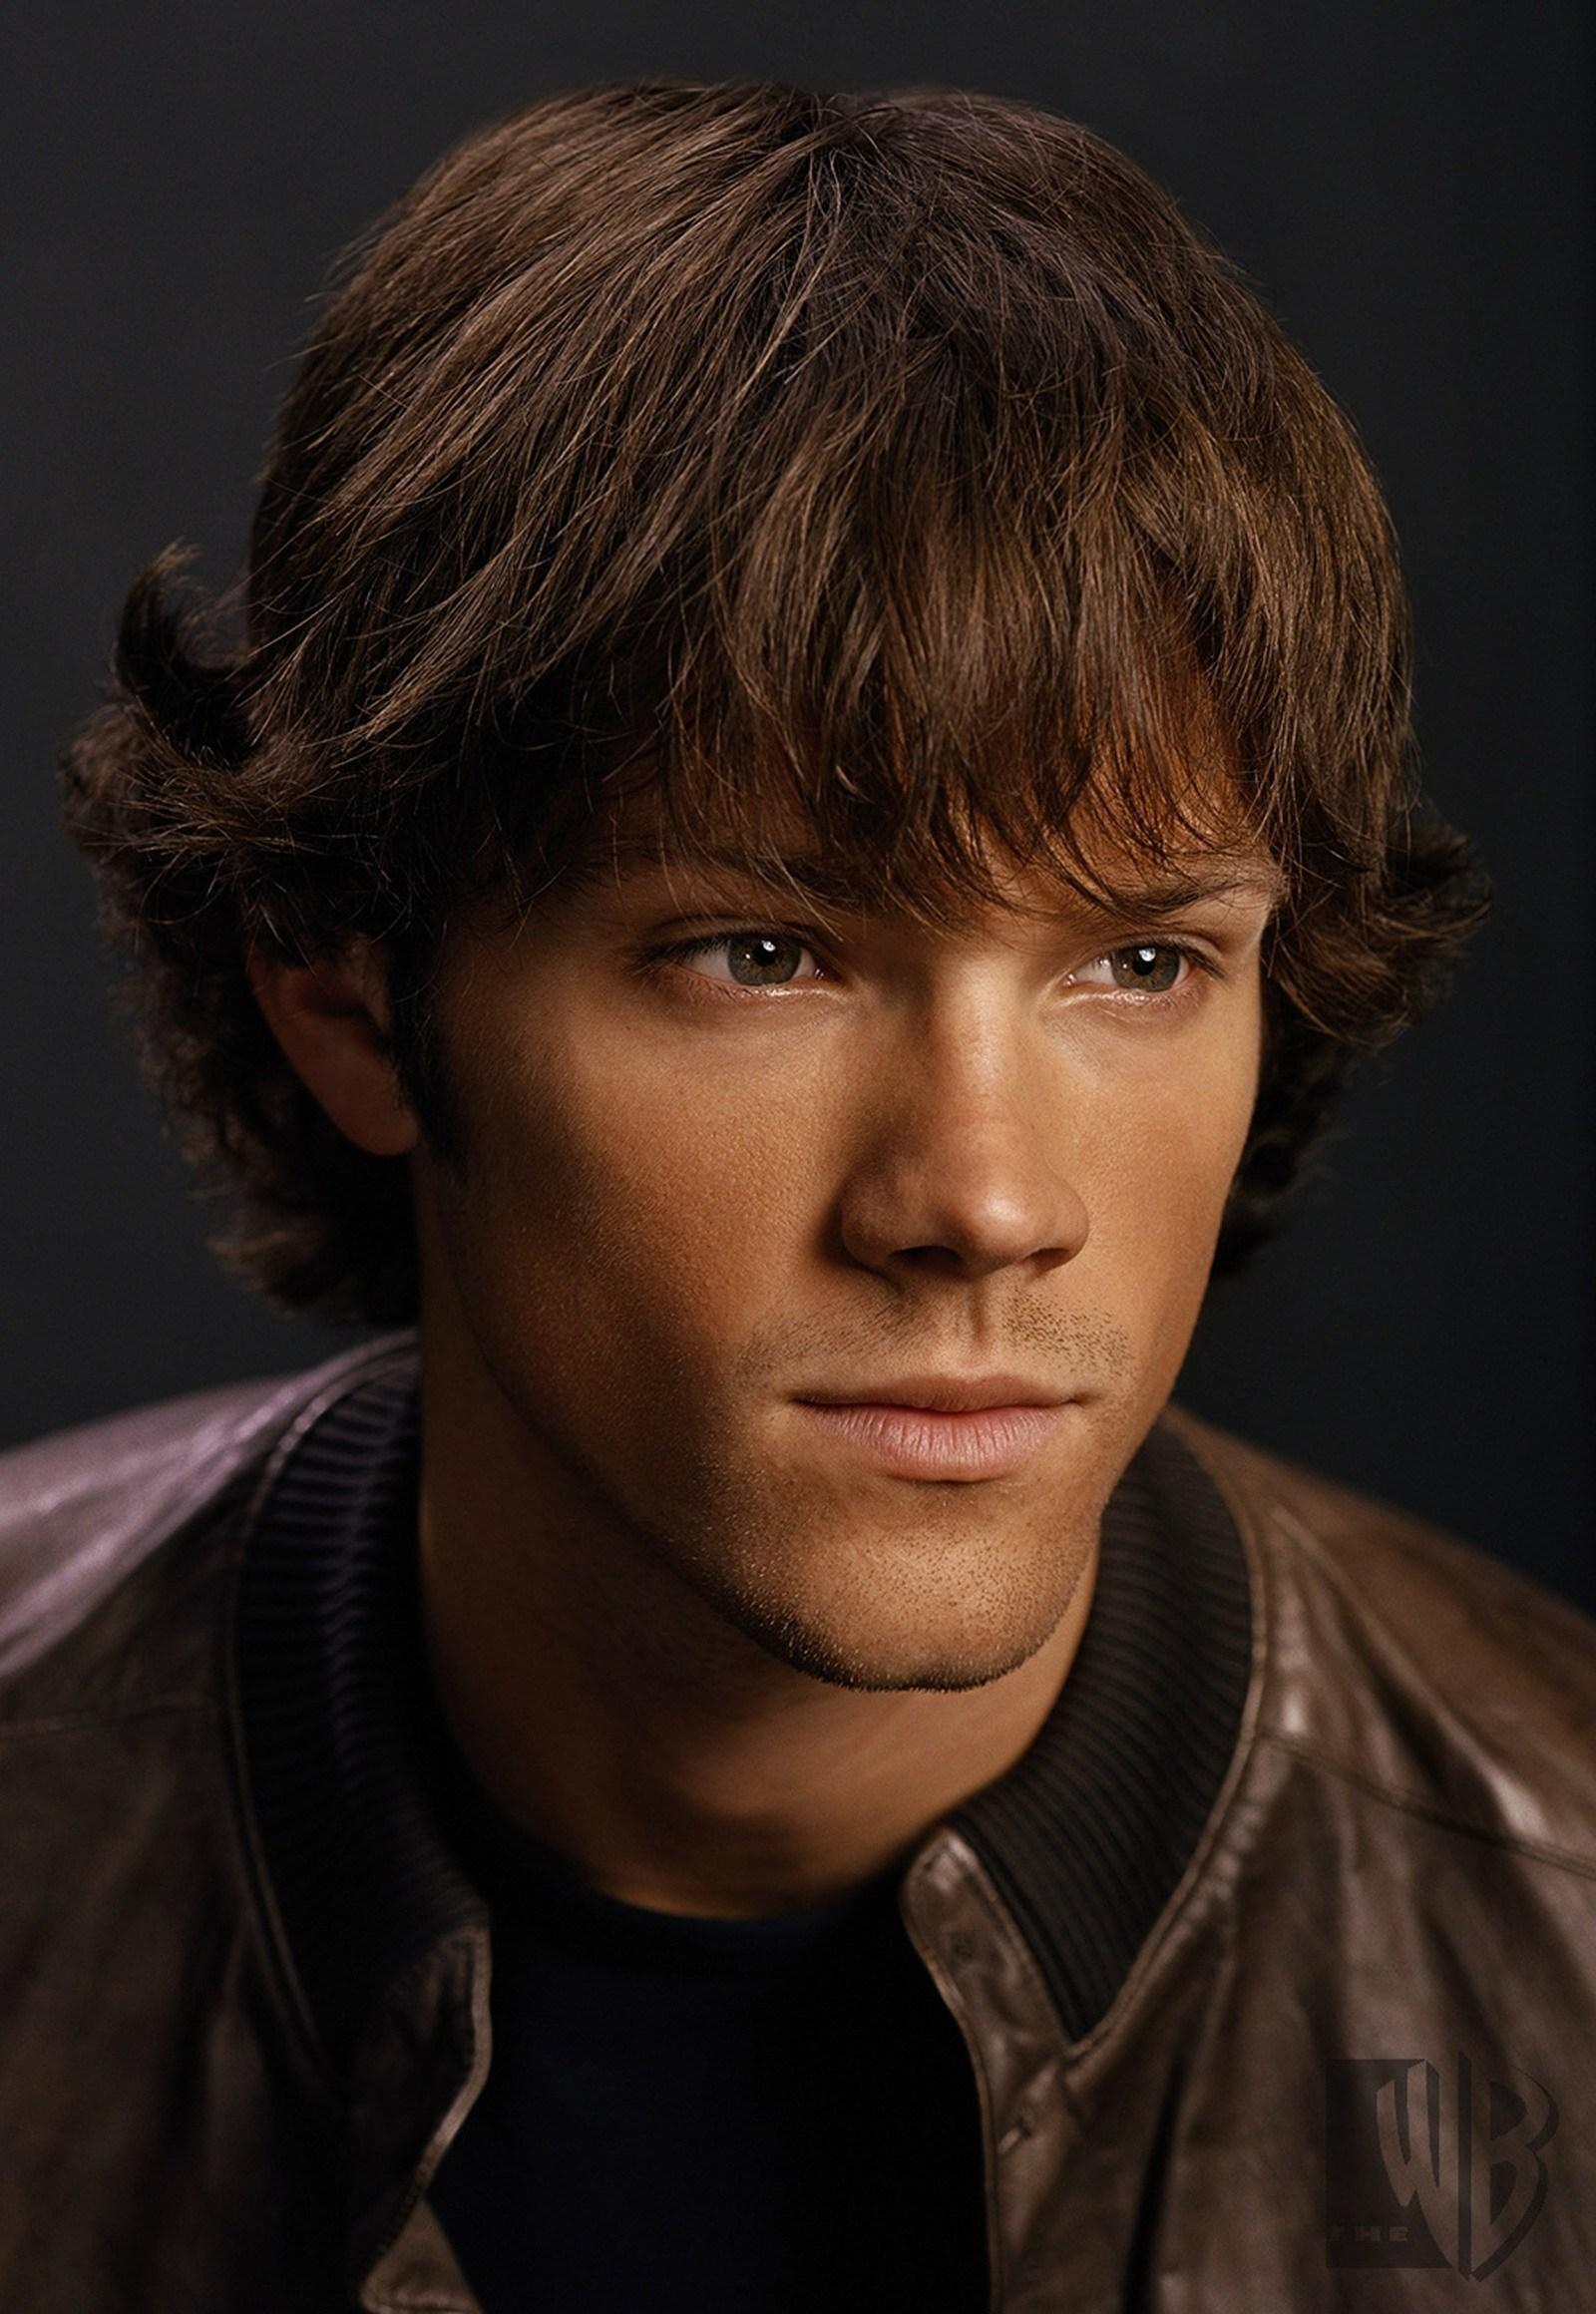 Jared Padalecki images Jared Padalecki HD wallpaper and background ...